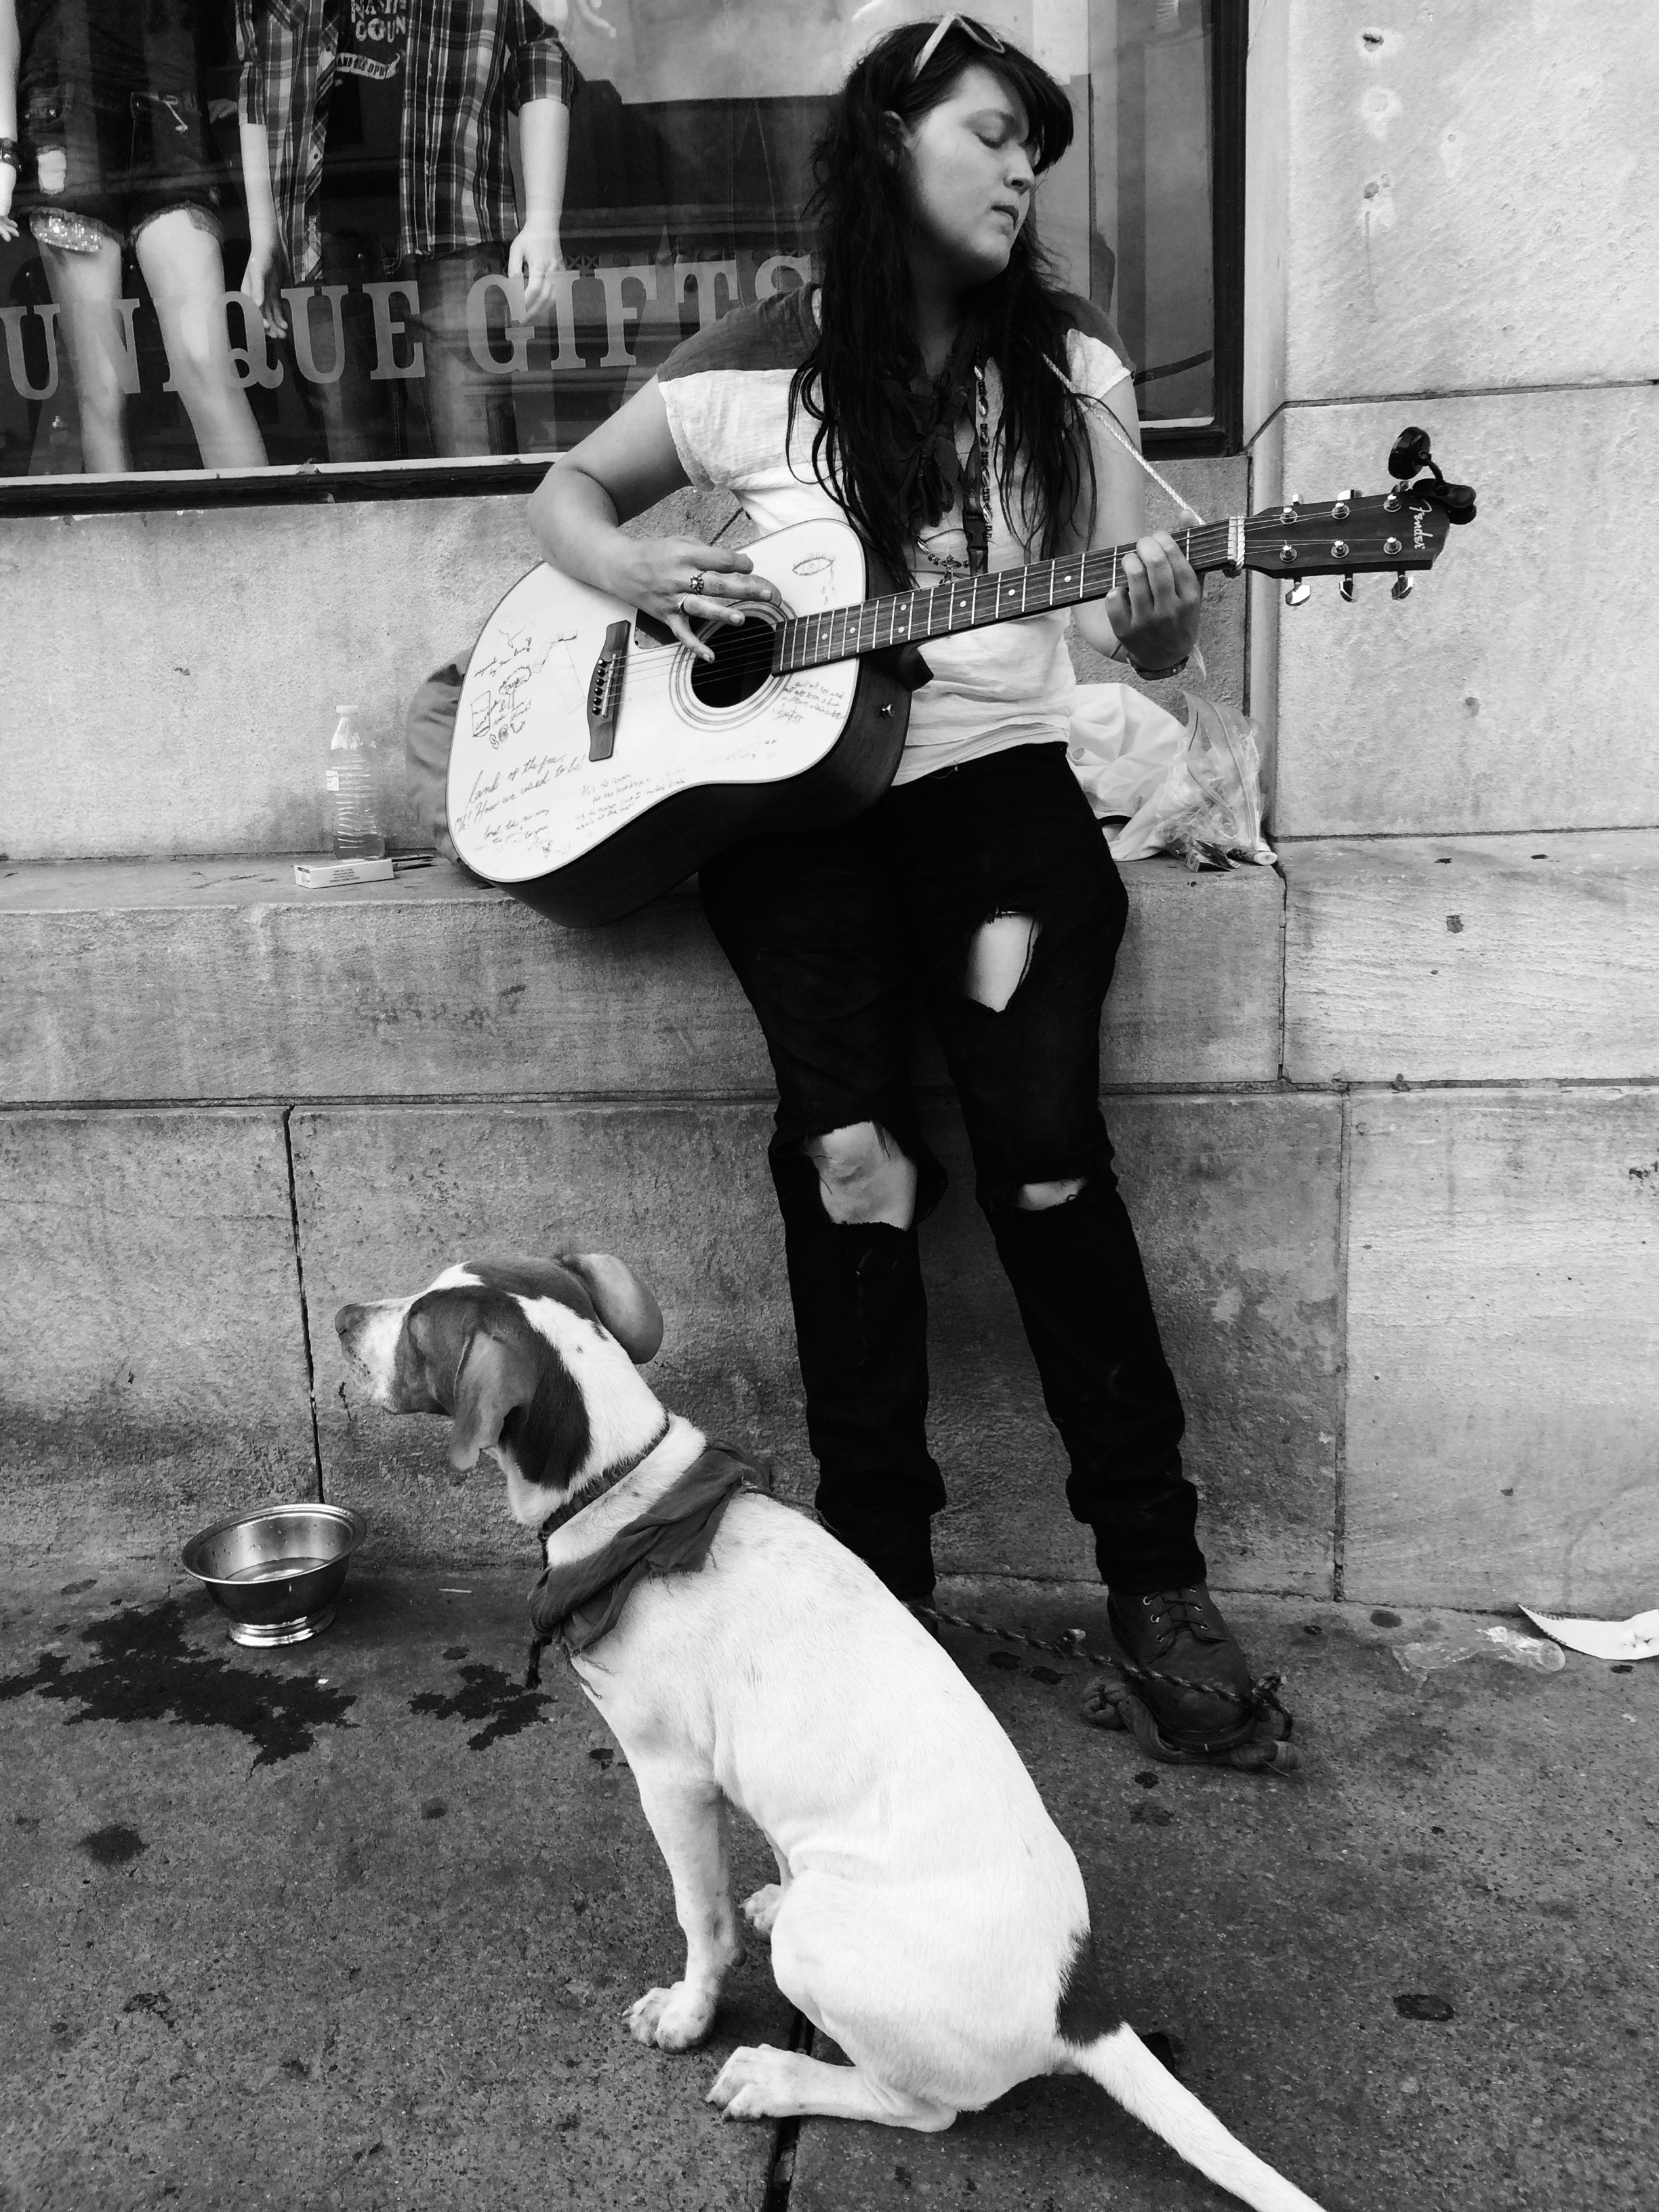 An aspiring country music star busks on Broadway, while her dog listens patiently in the heart of Nashville's honky tonk district. (Photo by Andrew Evans)